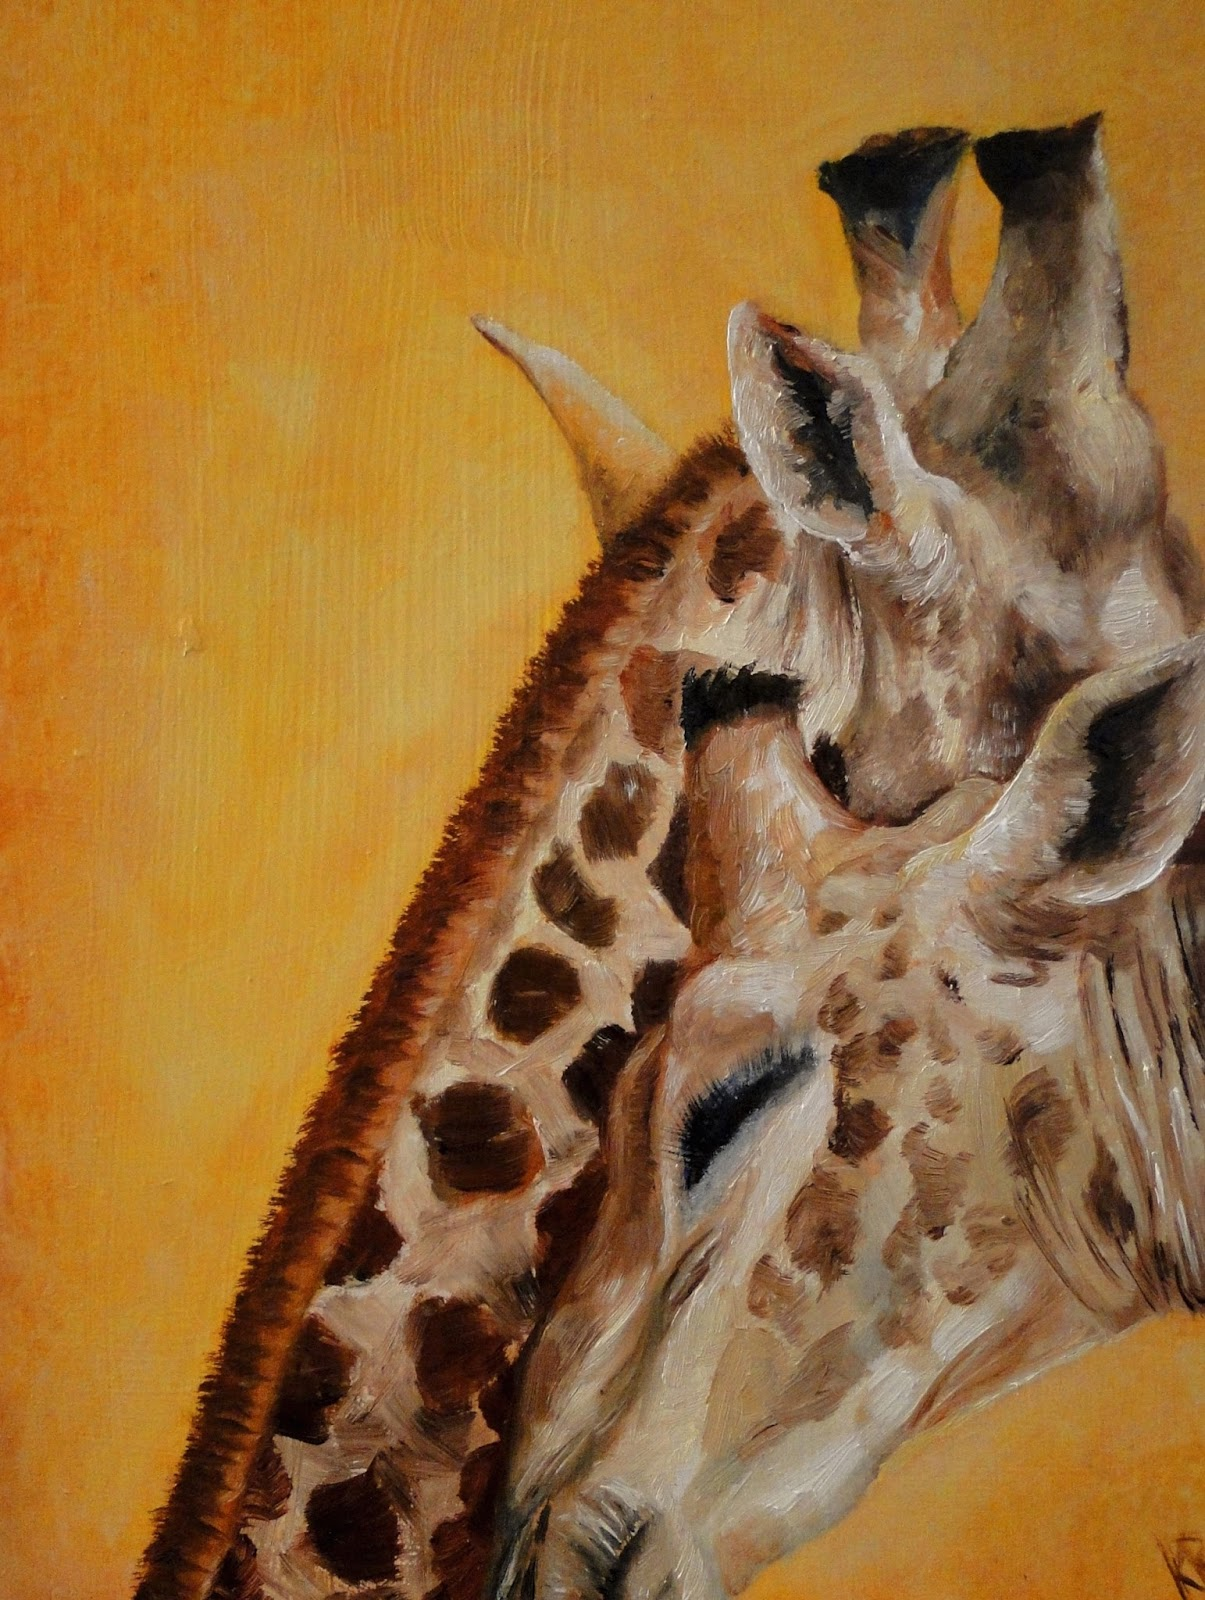 oil painting of two giraffes being affectionate, for Valentine's Day. A pet portrait by Karen.